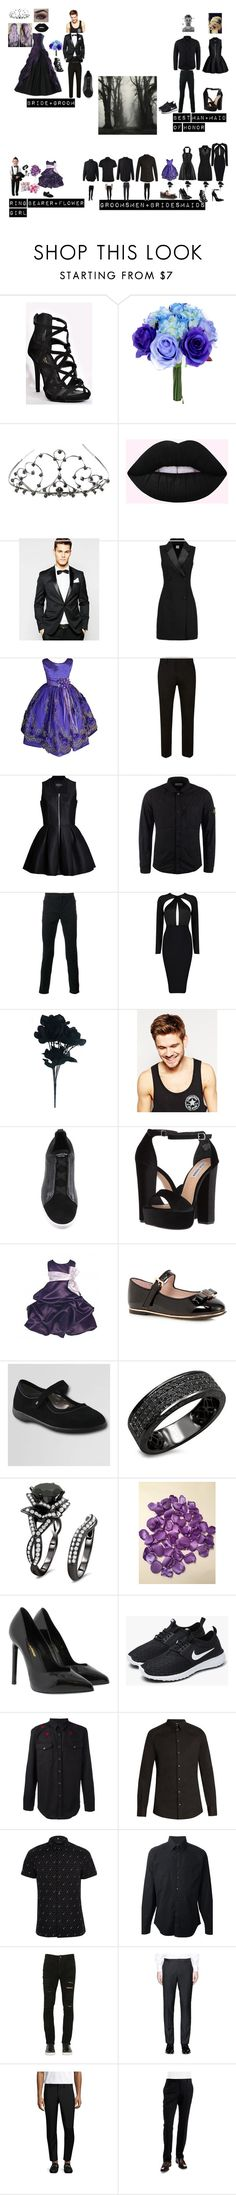 """My Dream Wedding!!!"" by batgirl-at-the-disco3 ❤ liked on Polyvore featuring Elope, ASOS, Iris & Ink, INC International Concepts, Topman, Lavinia Cadar, STONE ISLAND, Balmain, Toni&Guy and Ermenegildo Zegna"